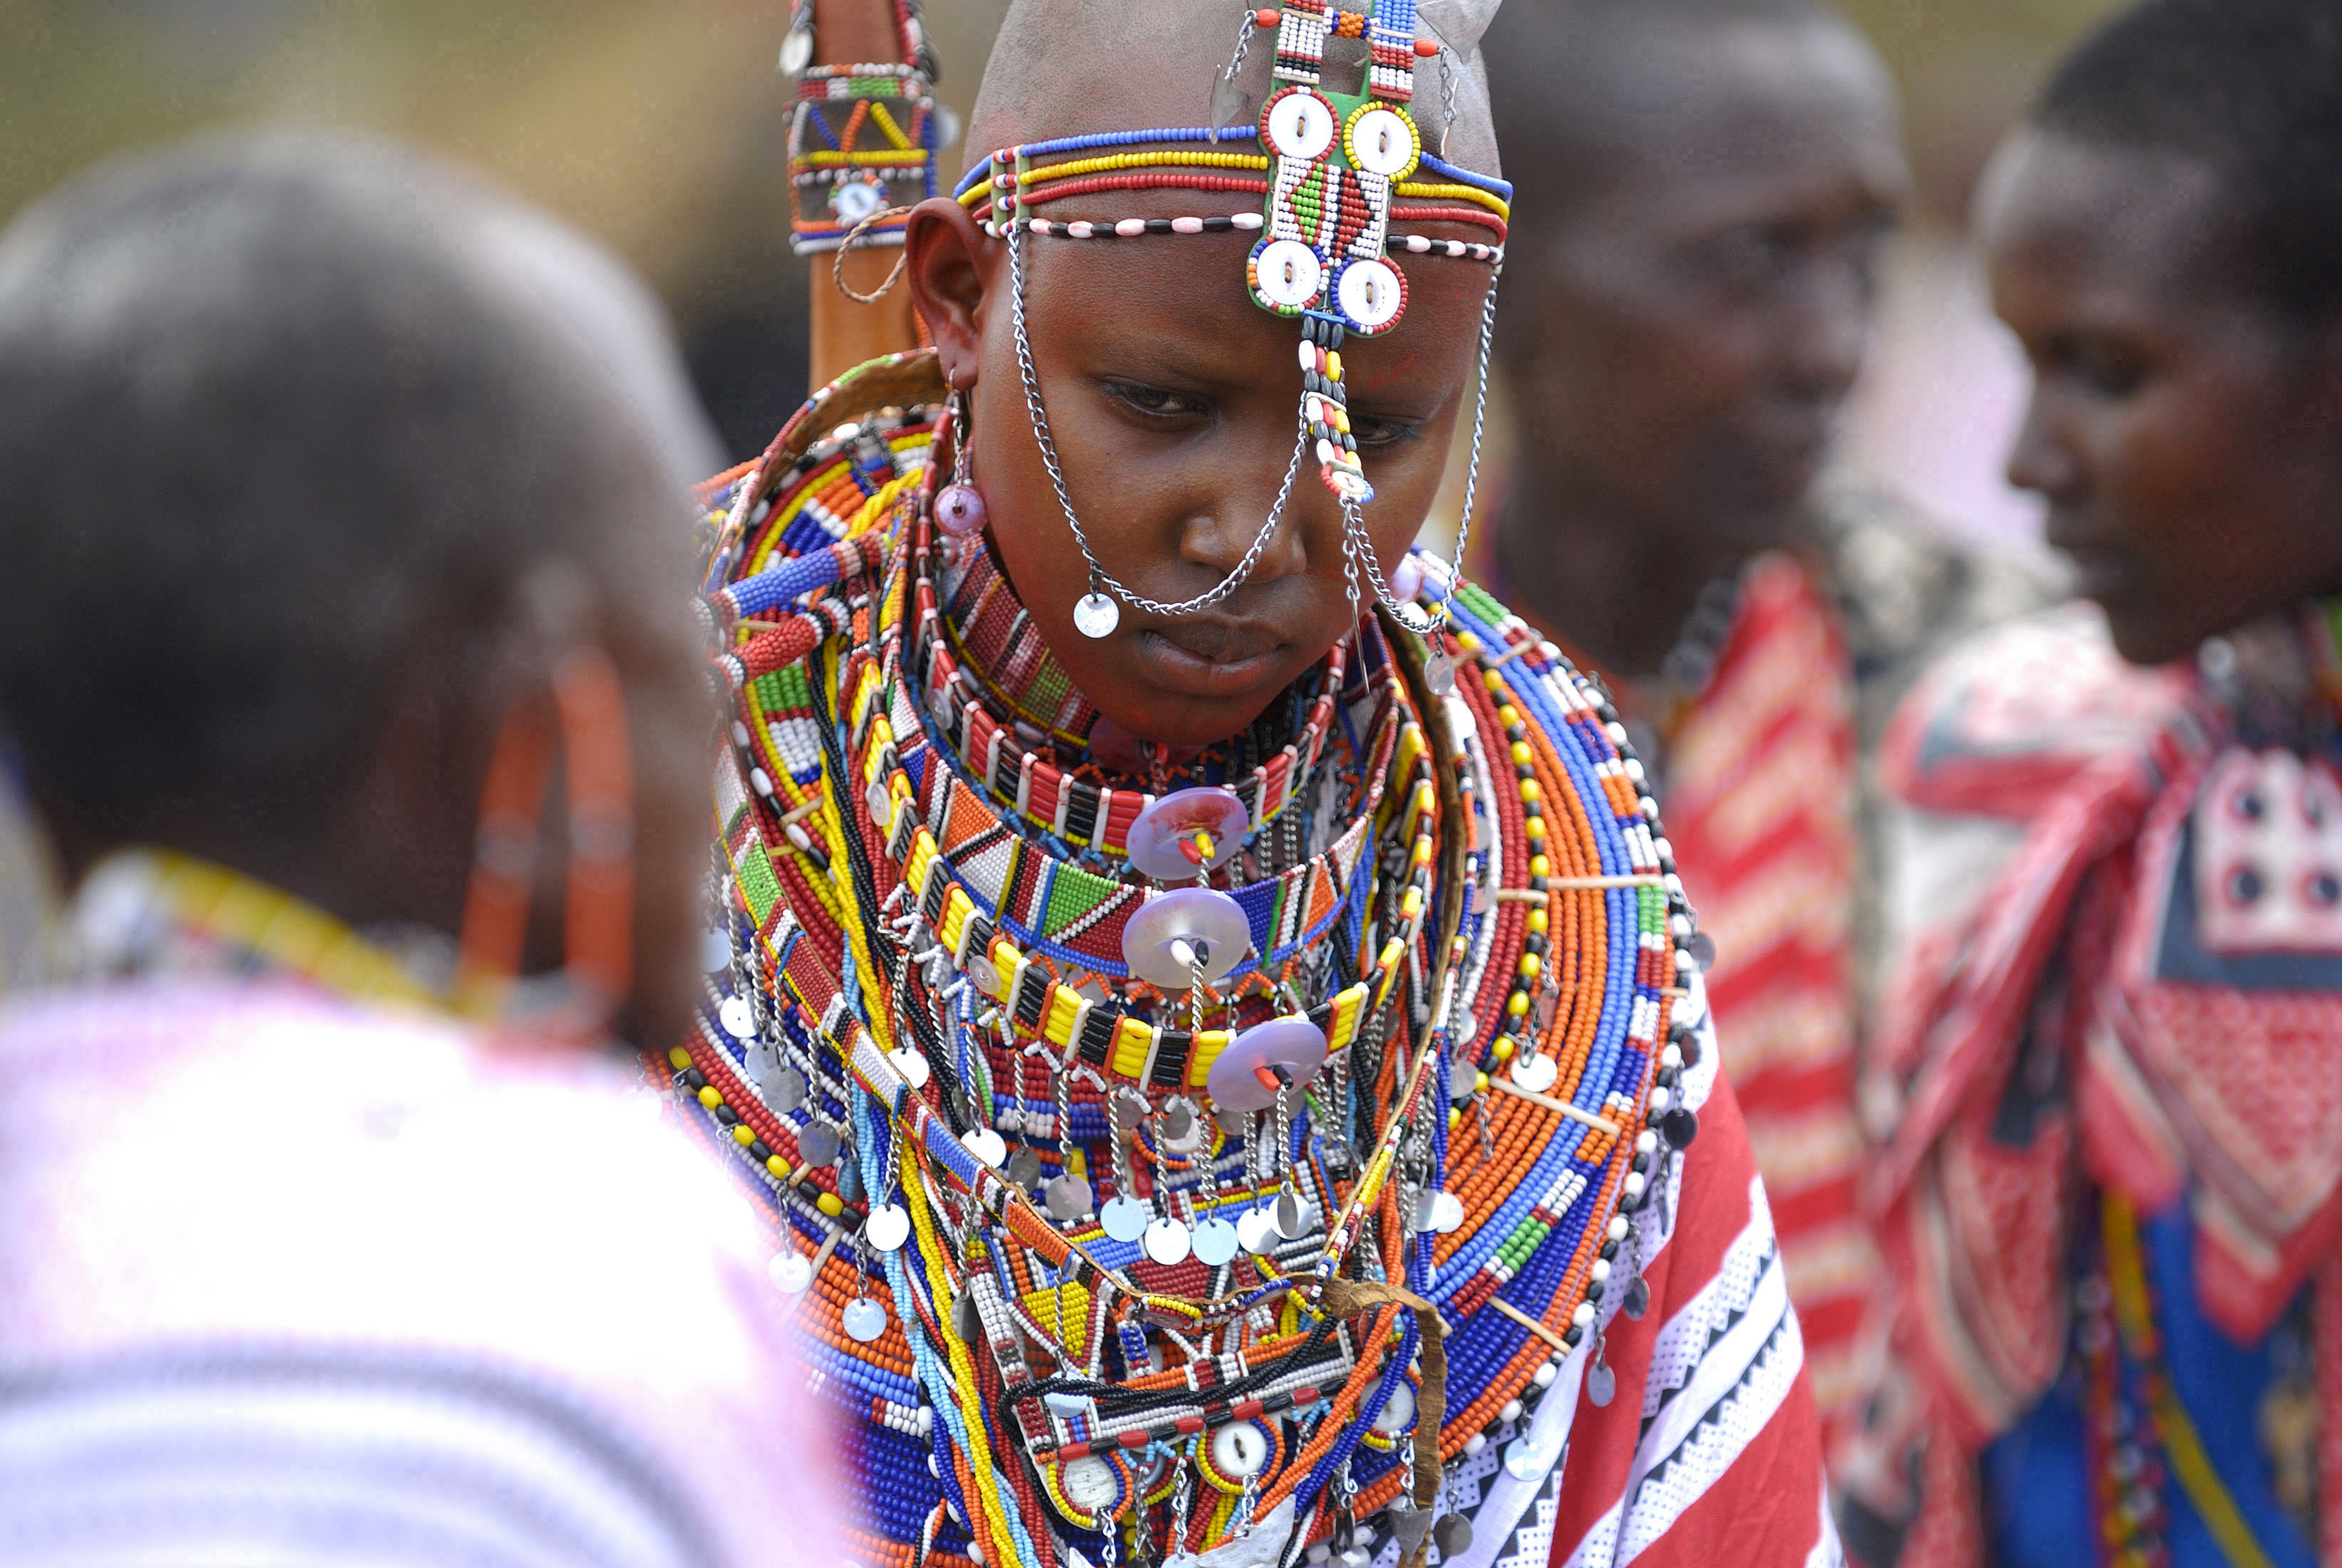 maasai-bride-baiera-wears-traditional-bead-necklaces-during-her-wedding-in-olepolos-village